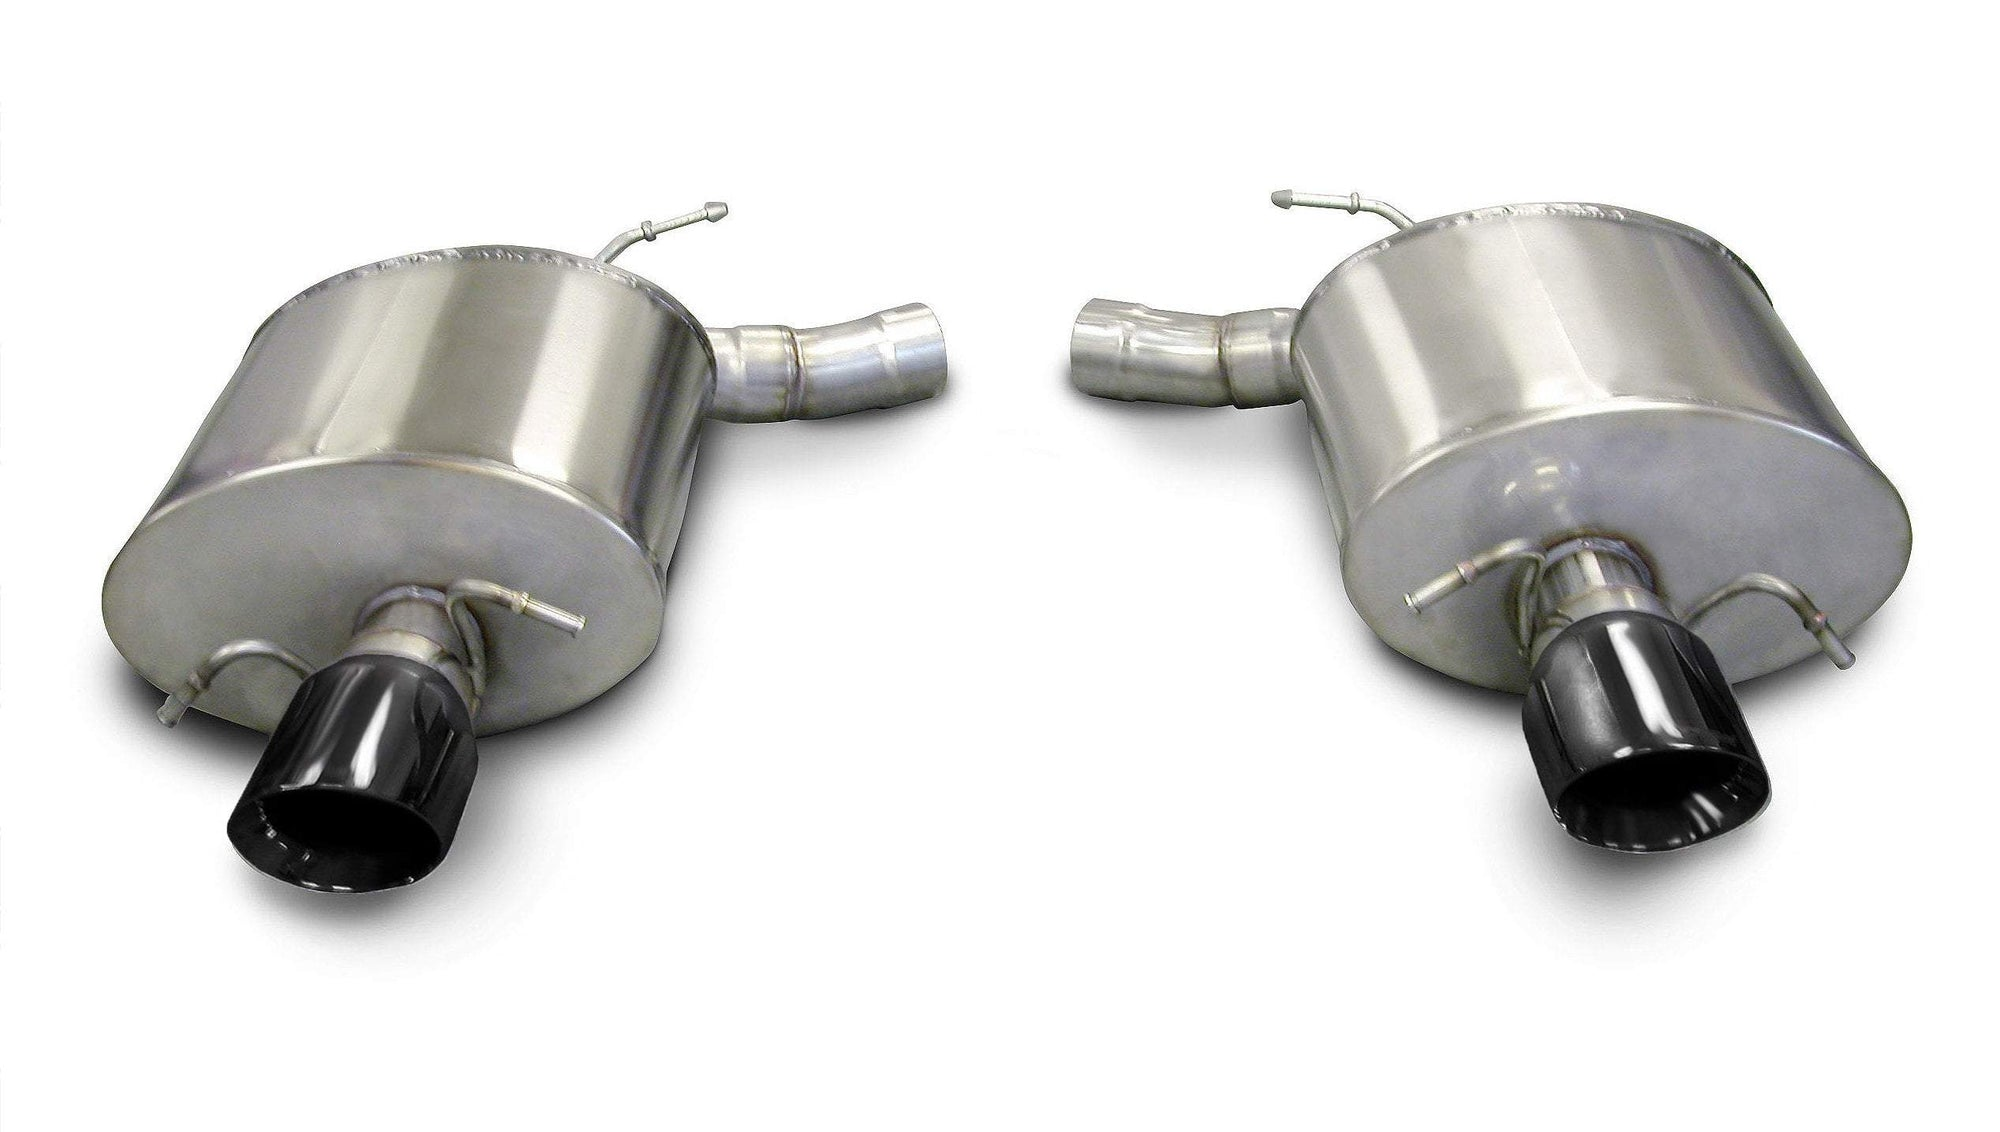 "CORSA PERFORMANCE Axle-Back Exhaust Polished / Sport / Dual Rear - Single 4.0in 2009-2014 Cadillac CTS-V Sedan 6.2L V8 2.5"" Dual Rear Exit Axle-Back Exhaust System with Single 4.0"" Tips (14941) Sport Sound Level"